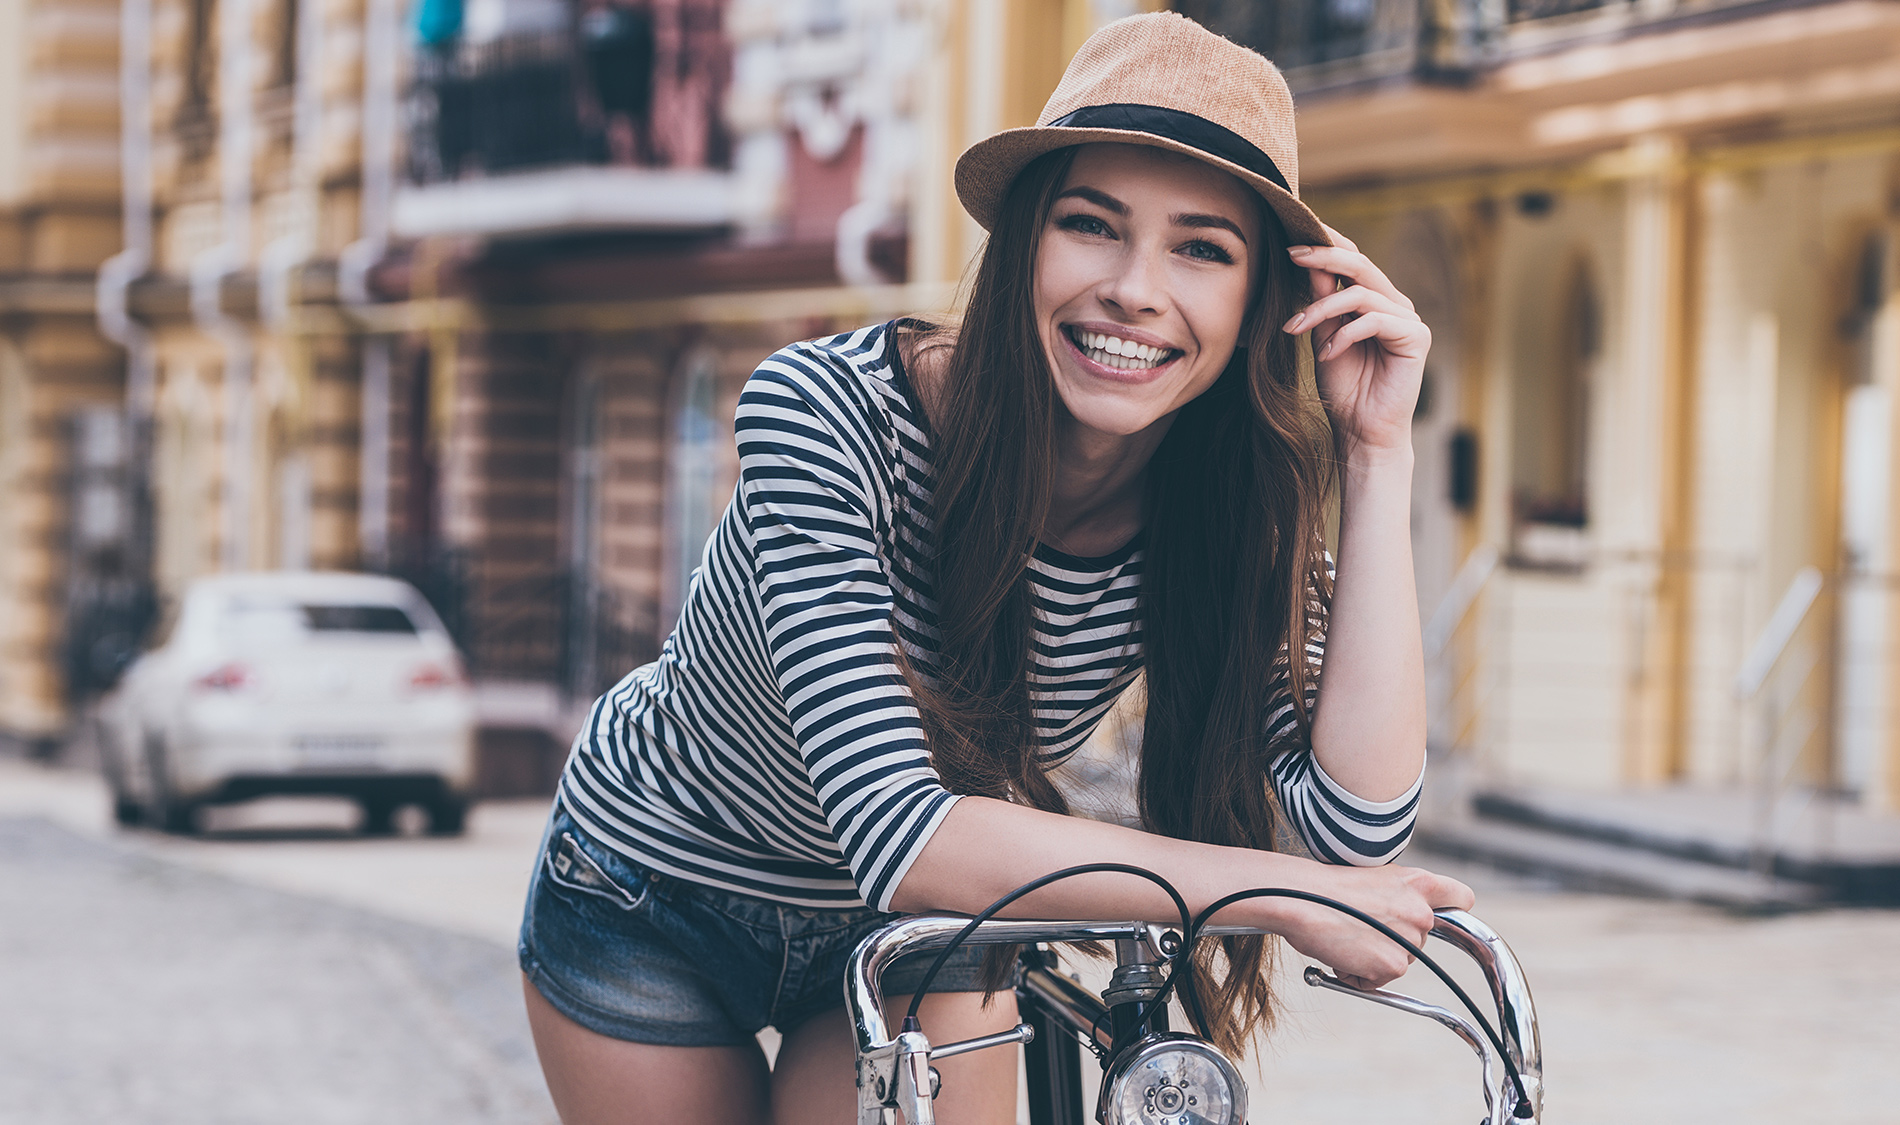 Woman smiling on bike